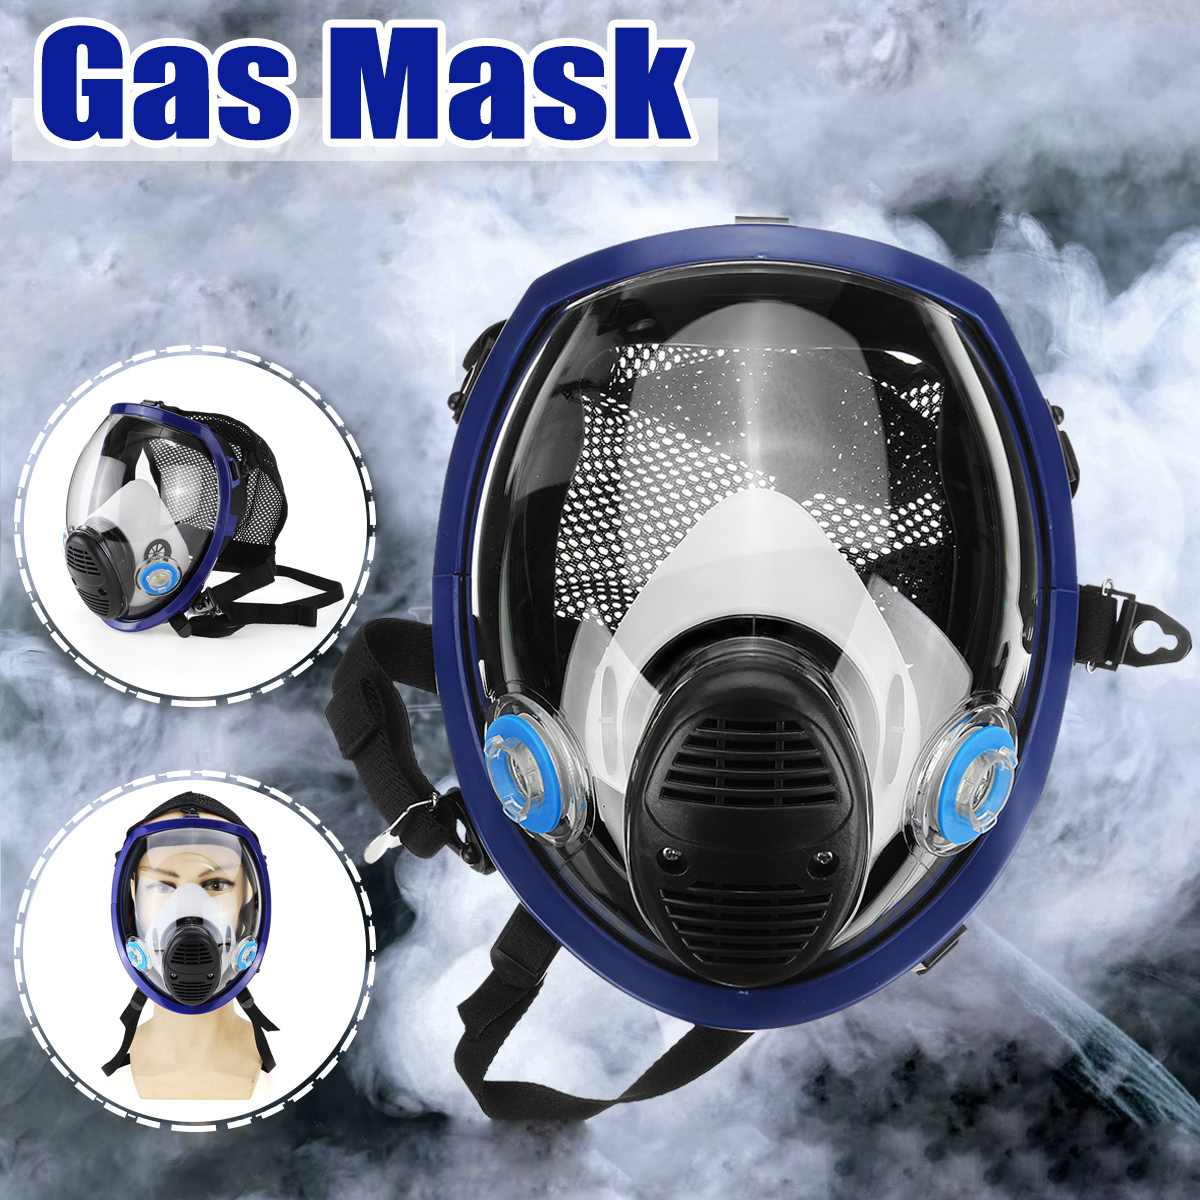 6800 For3M Full Face Chemical Mask Gas Mask Acid Dust Respirator Paint Pesticide Spray Silicone Filter Laboratory Welding6800 For3M Full Face Chemical Mask Gas Mask Acid Dust Respirator Paint Pesticide Spray Silicone Filter Laboratory Welding